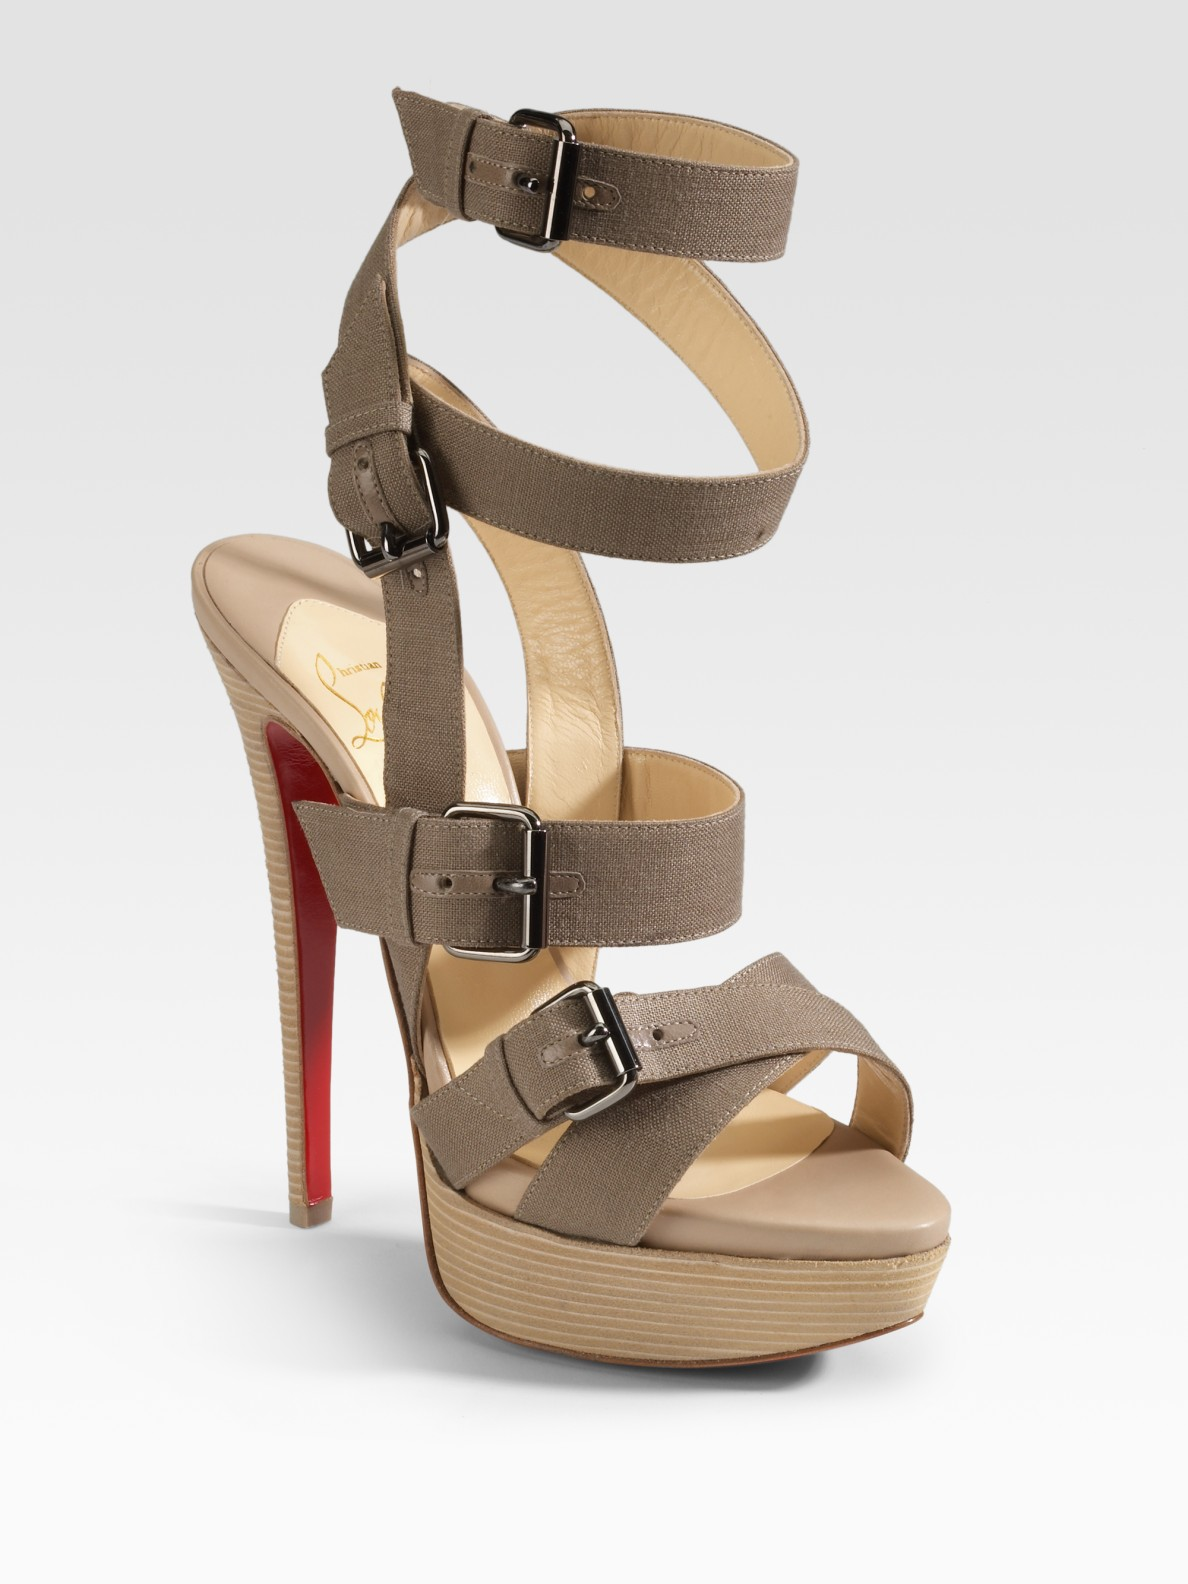 christian louboutin round-toe sandals Grey and brown canvas | The ...